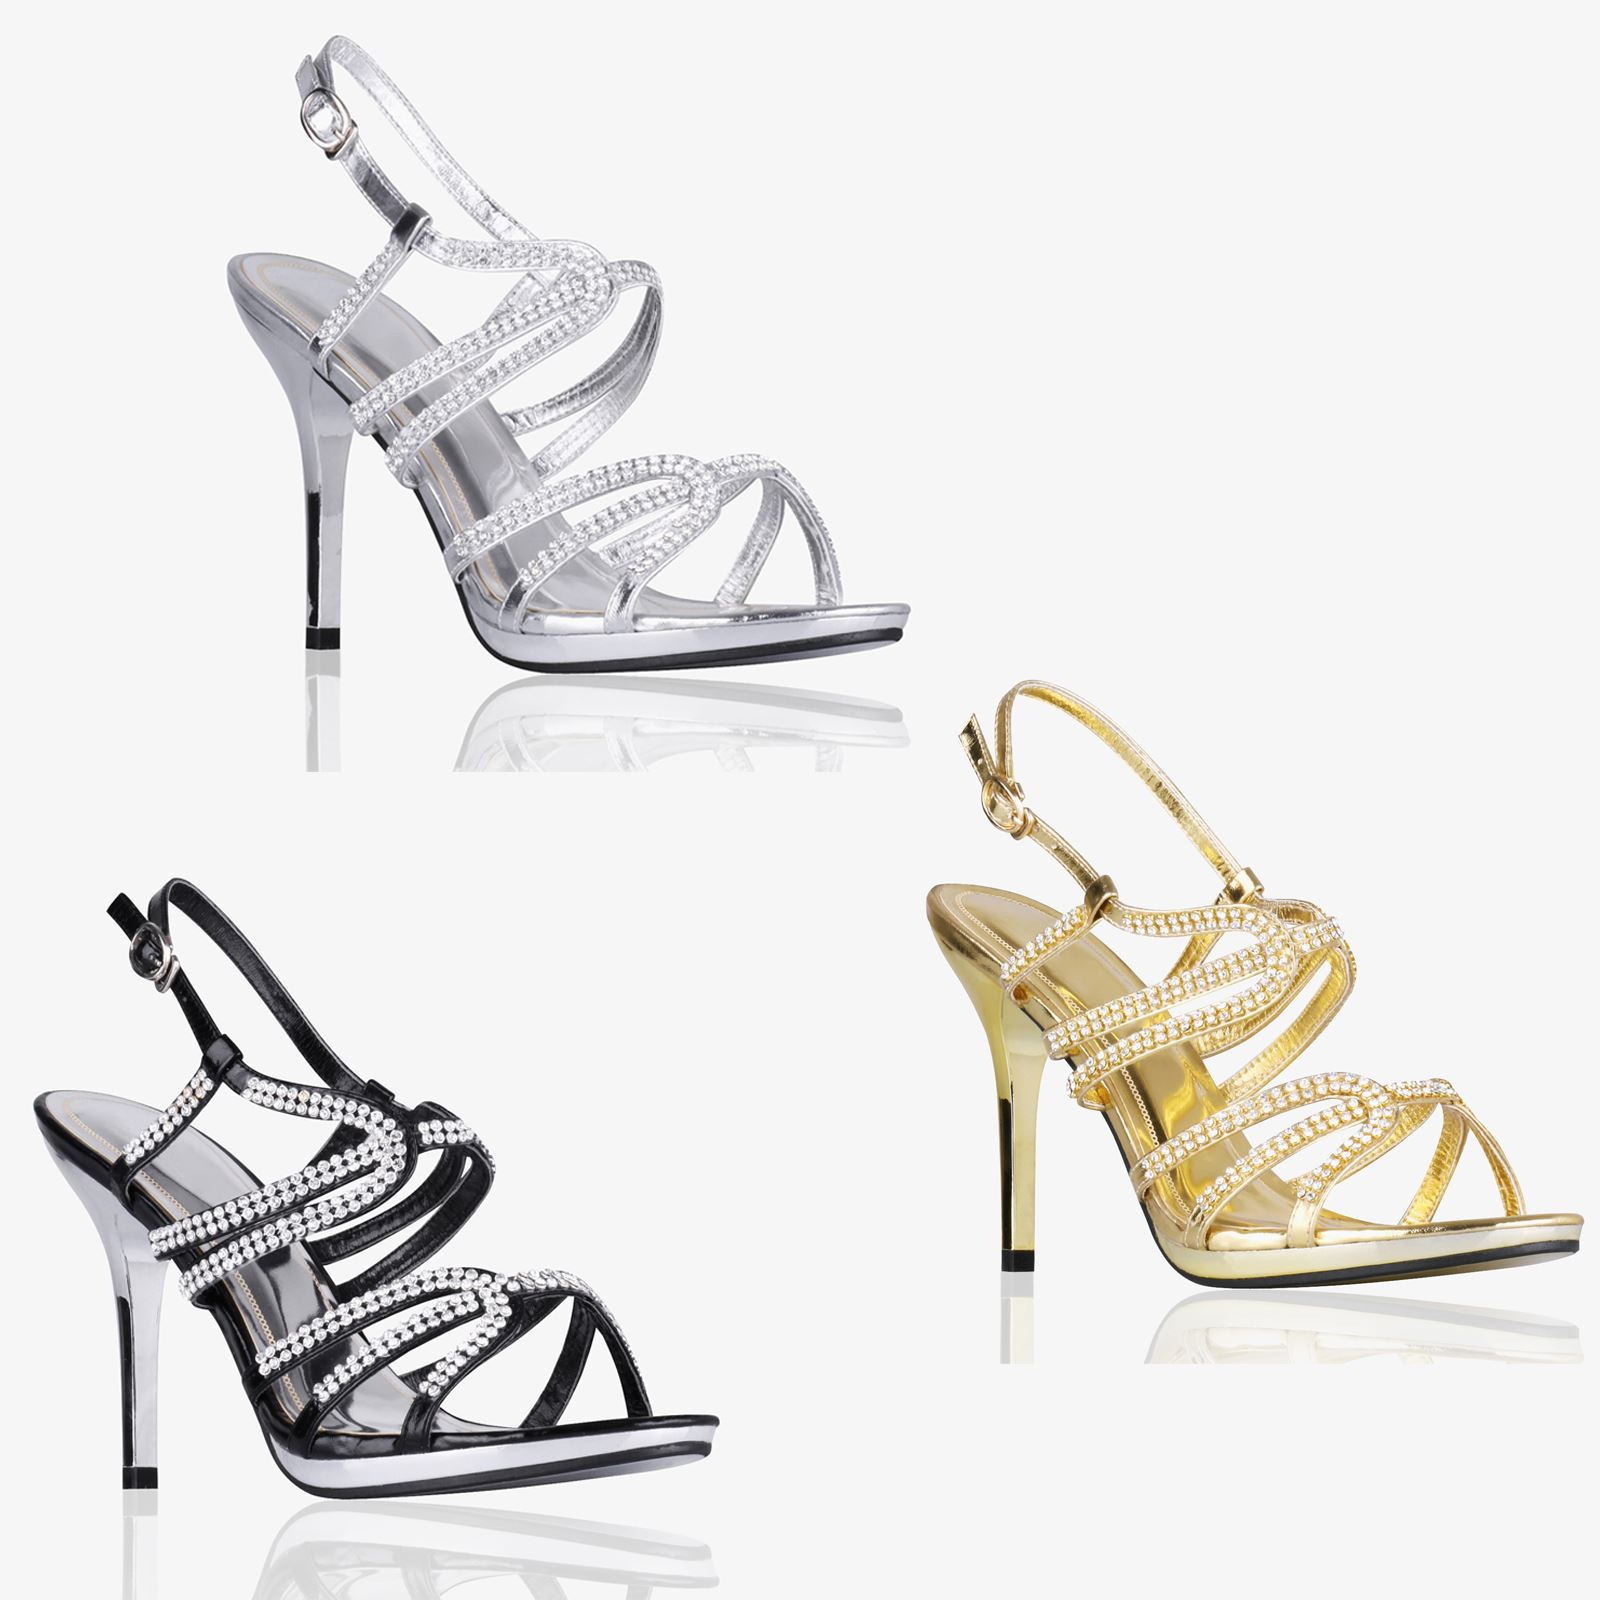 Details about Women Ladies Diamante Slingback High Heel Evening Sandals  Wedding Bridal Shoes